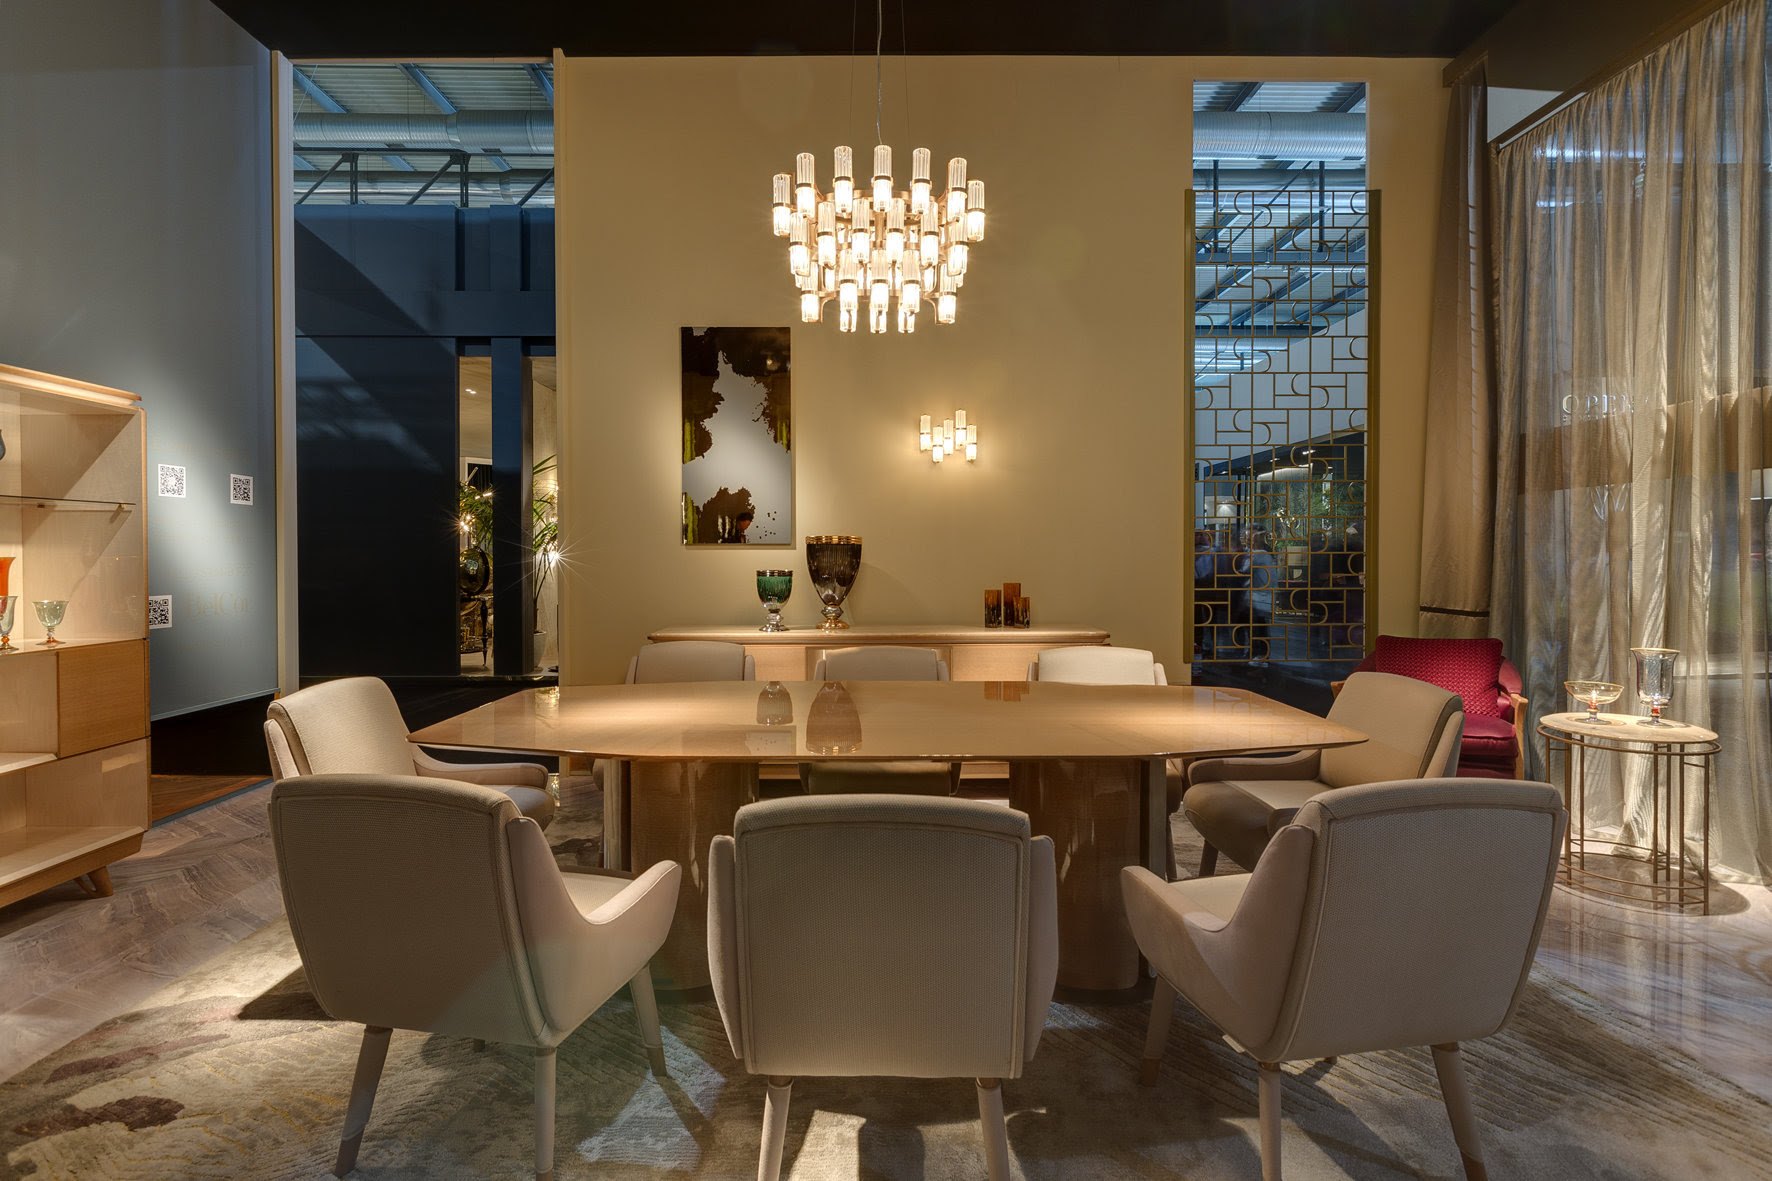 MSH at Salone - Officina Luce Soave collection at Prophilo stand - Masha Shapiro Agency UK.jpg